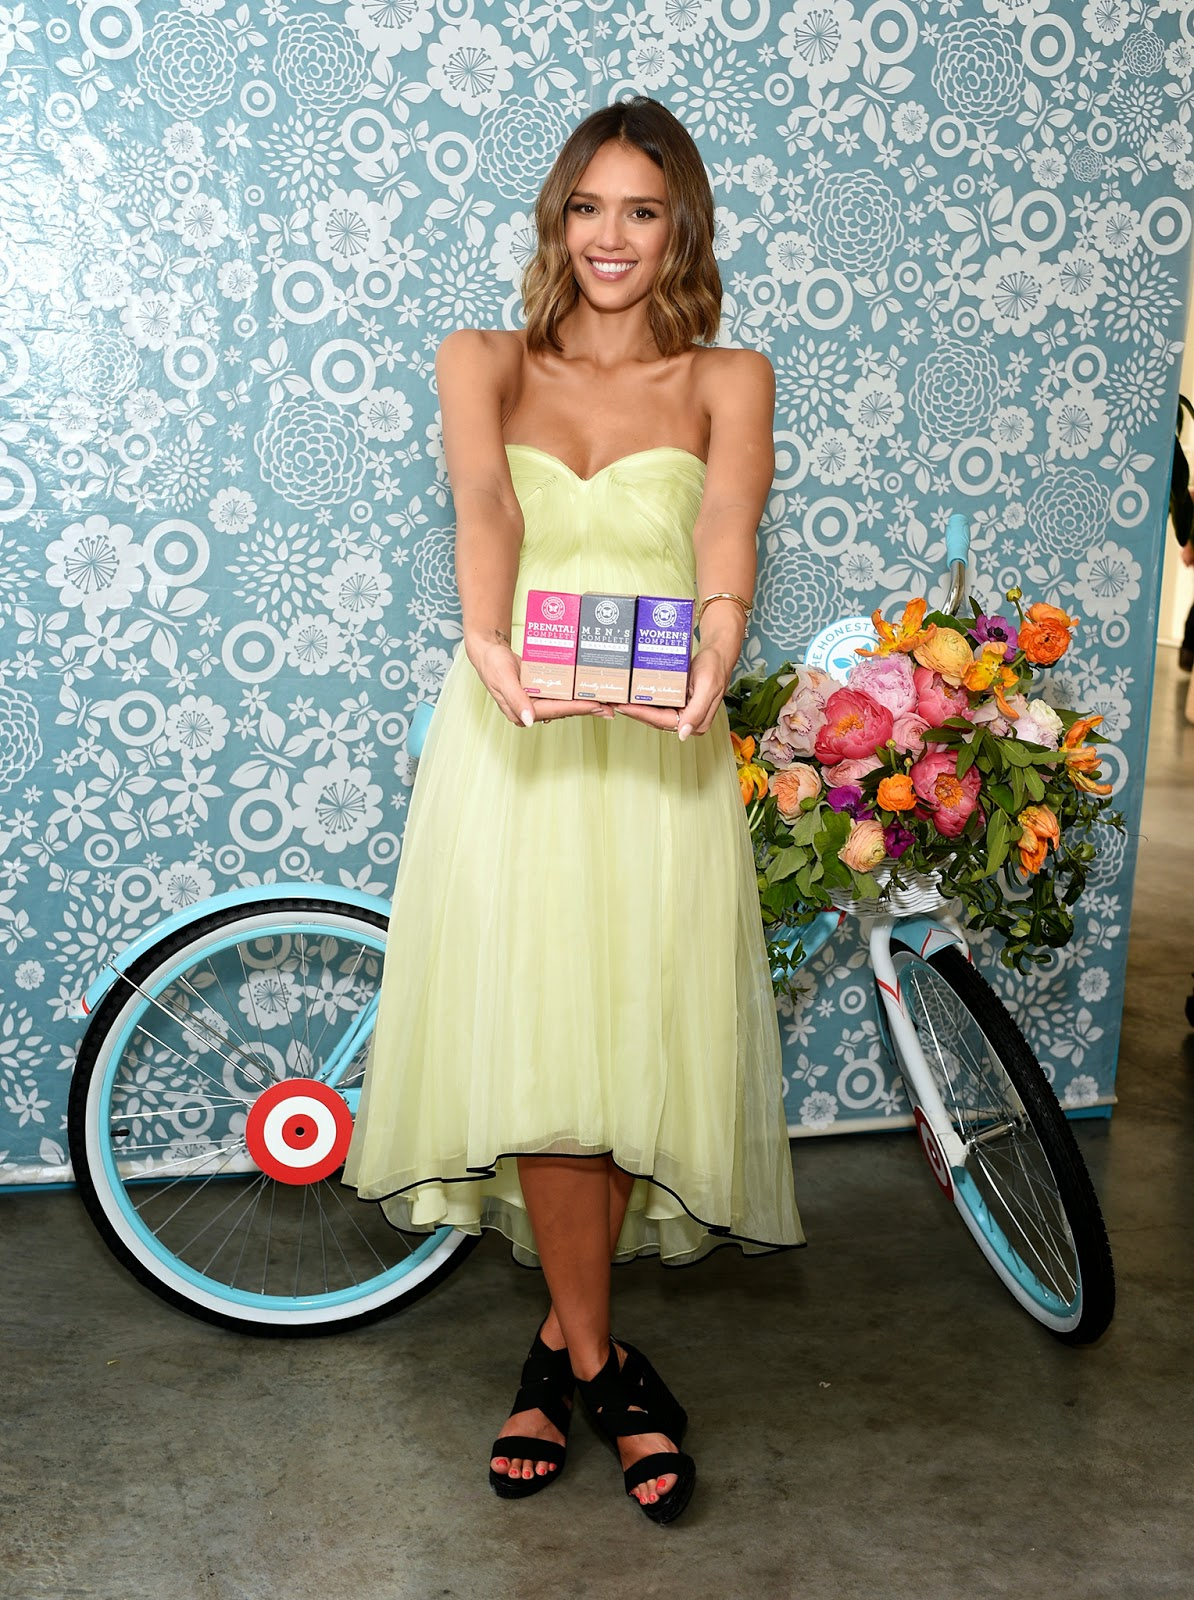 Actress @ Jessica Alba - The Honest Co. 1 Year Anniversary With Target